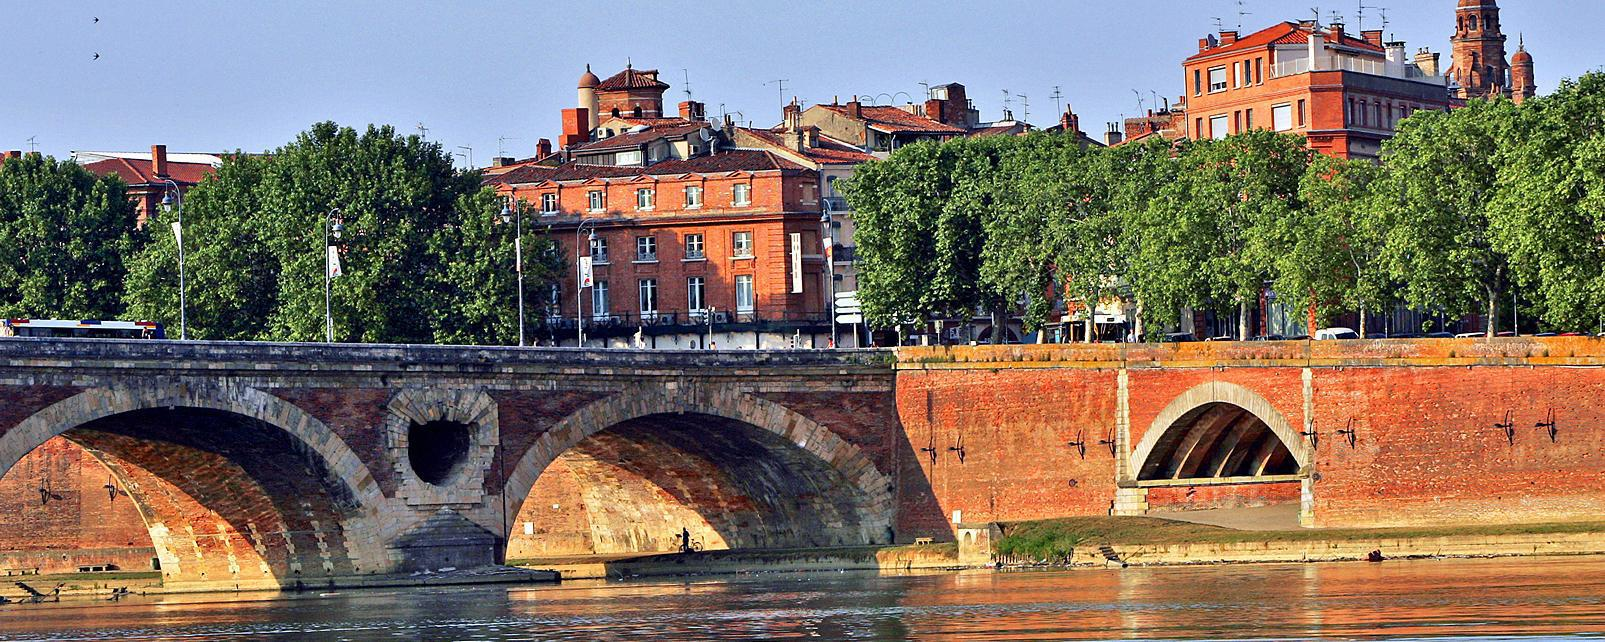 Europe; France; Midi-Pyrénées; Toulouse;